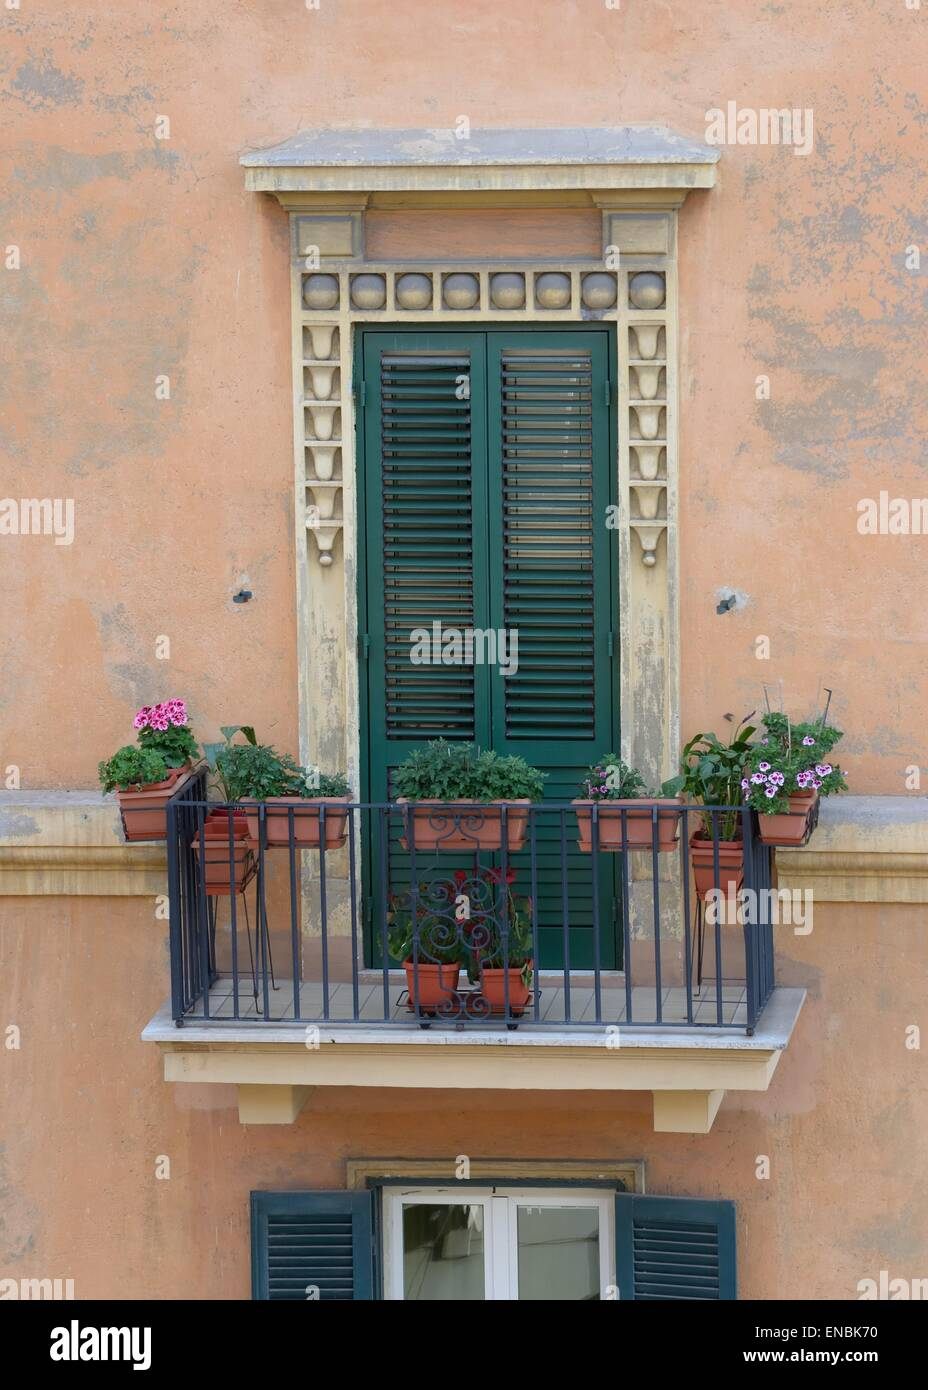 Italian style balcony with boxes of flowers and louvered door - Stock Image